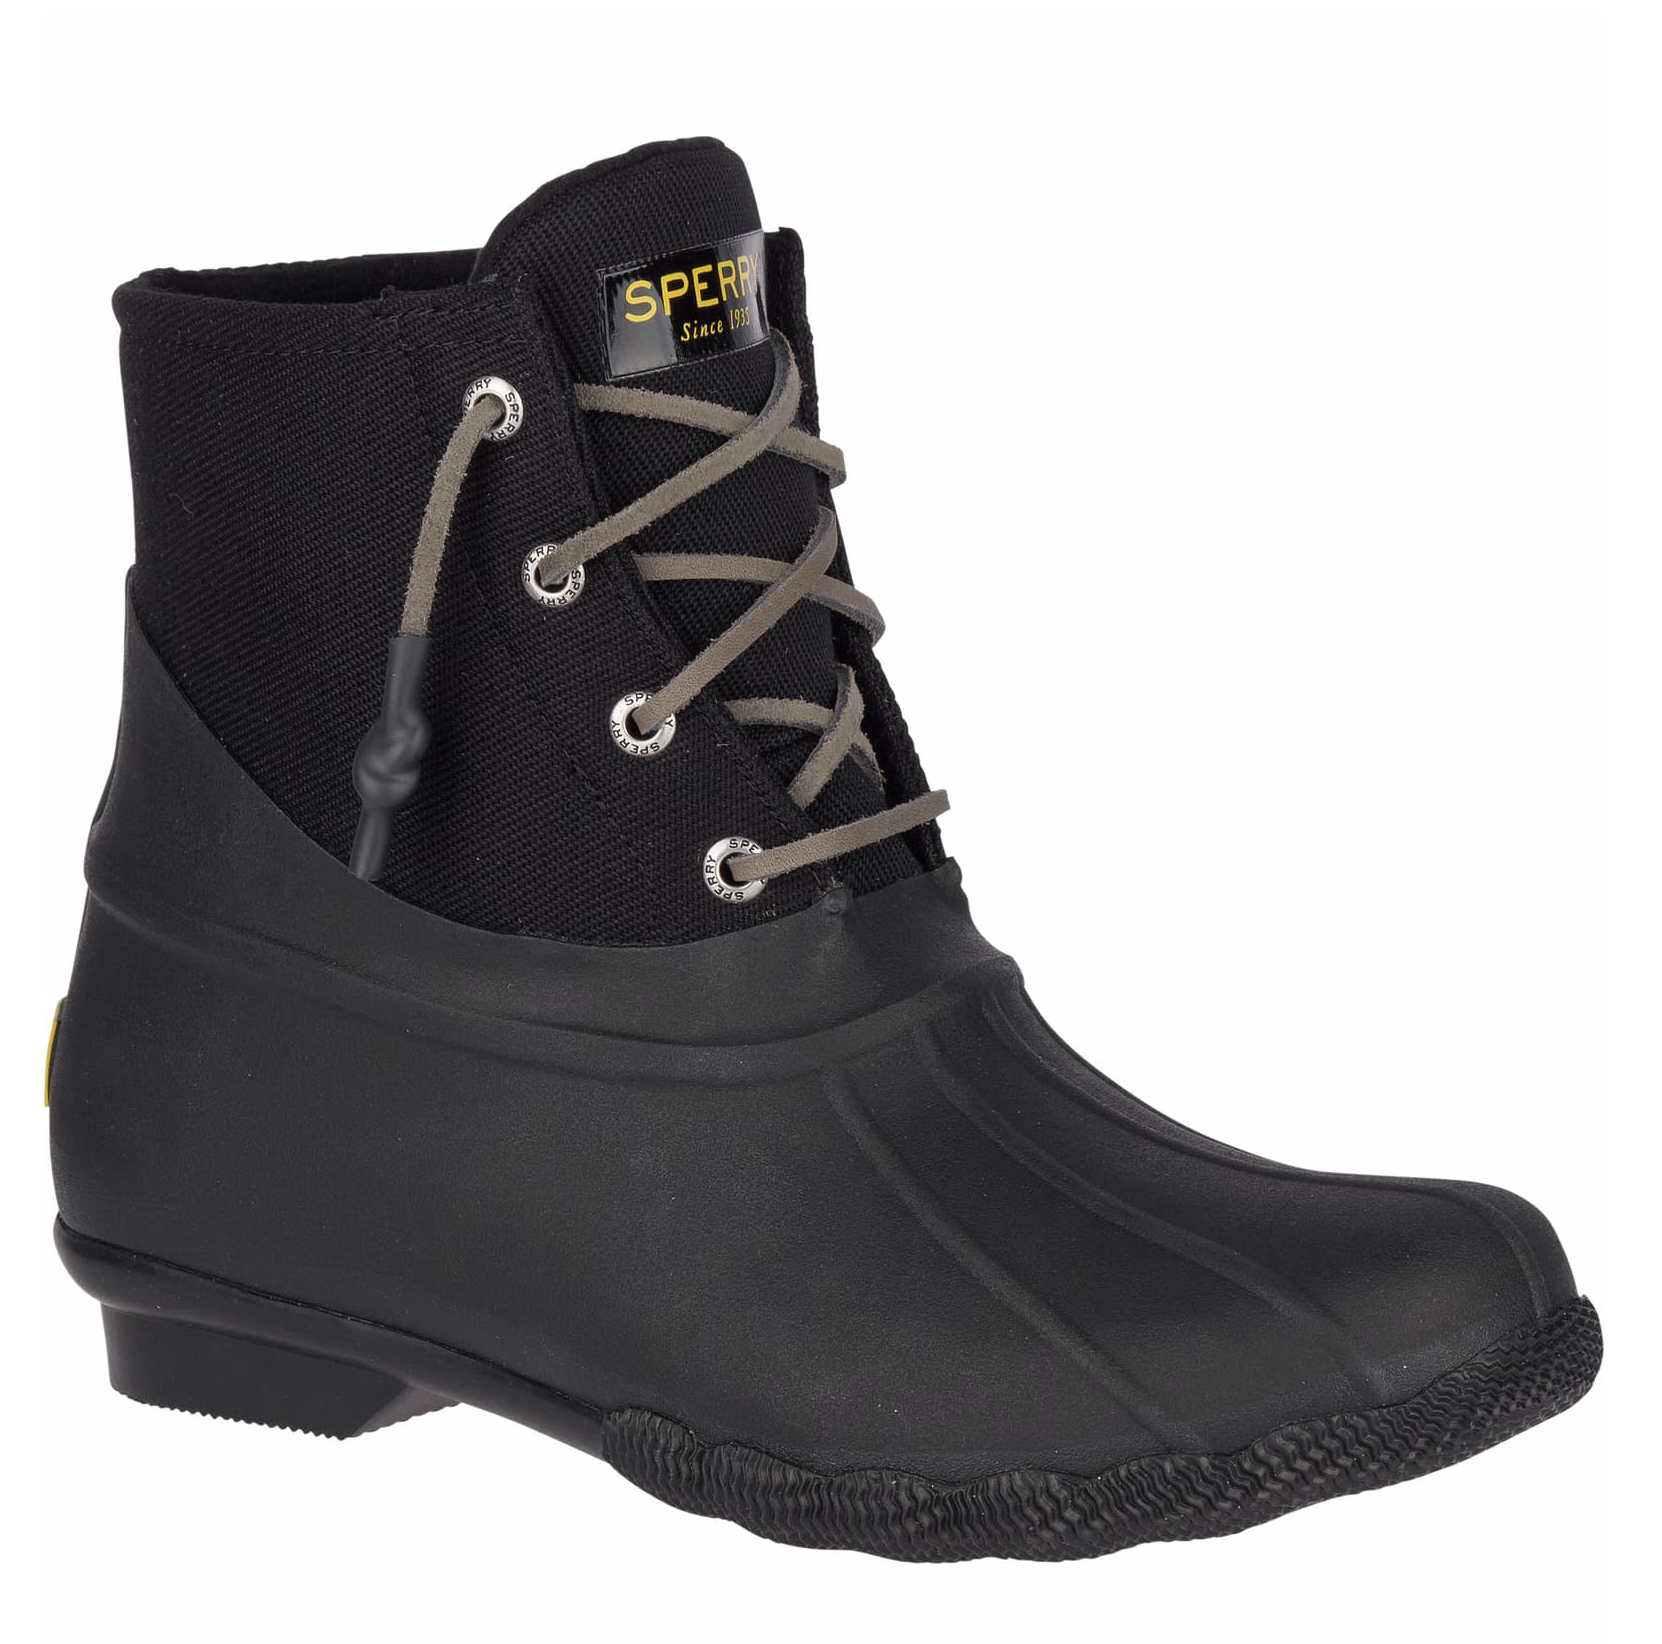 Sperry Saltwater Waterproof Rain Boot - $79.90